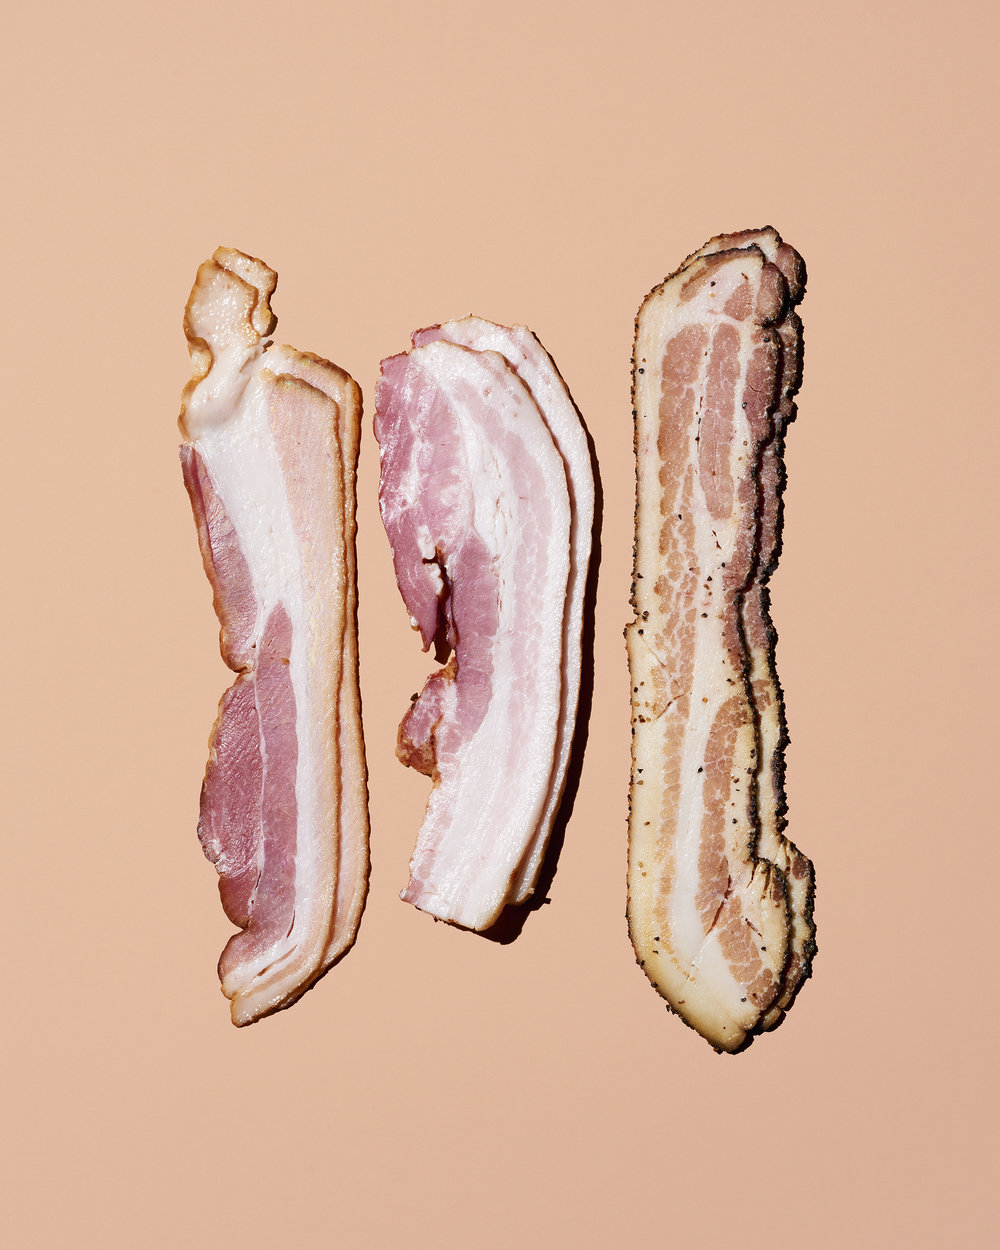 0417_BACON_016-RT.jpg